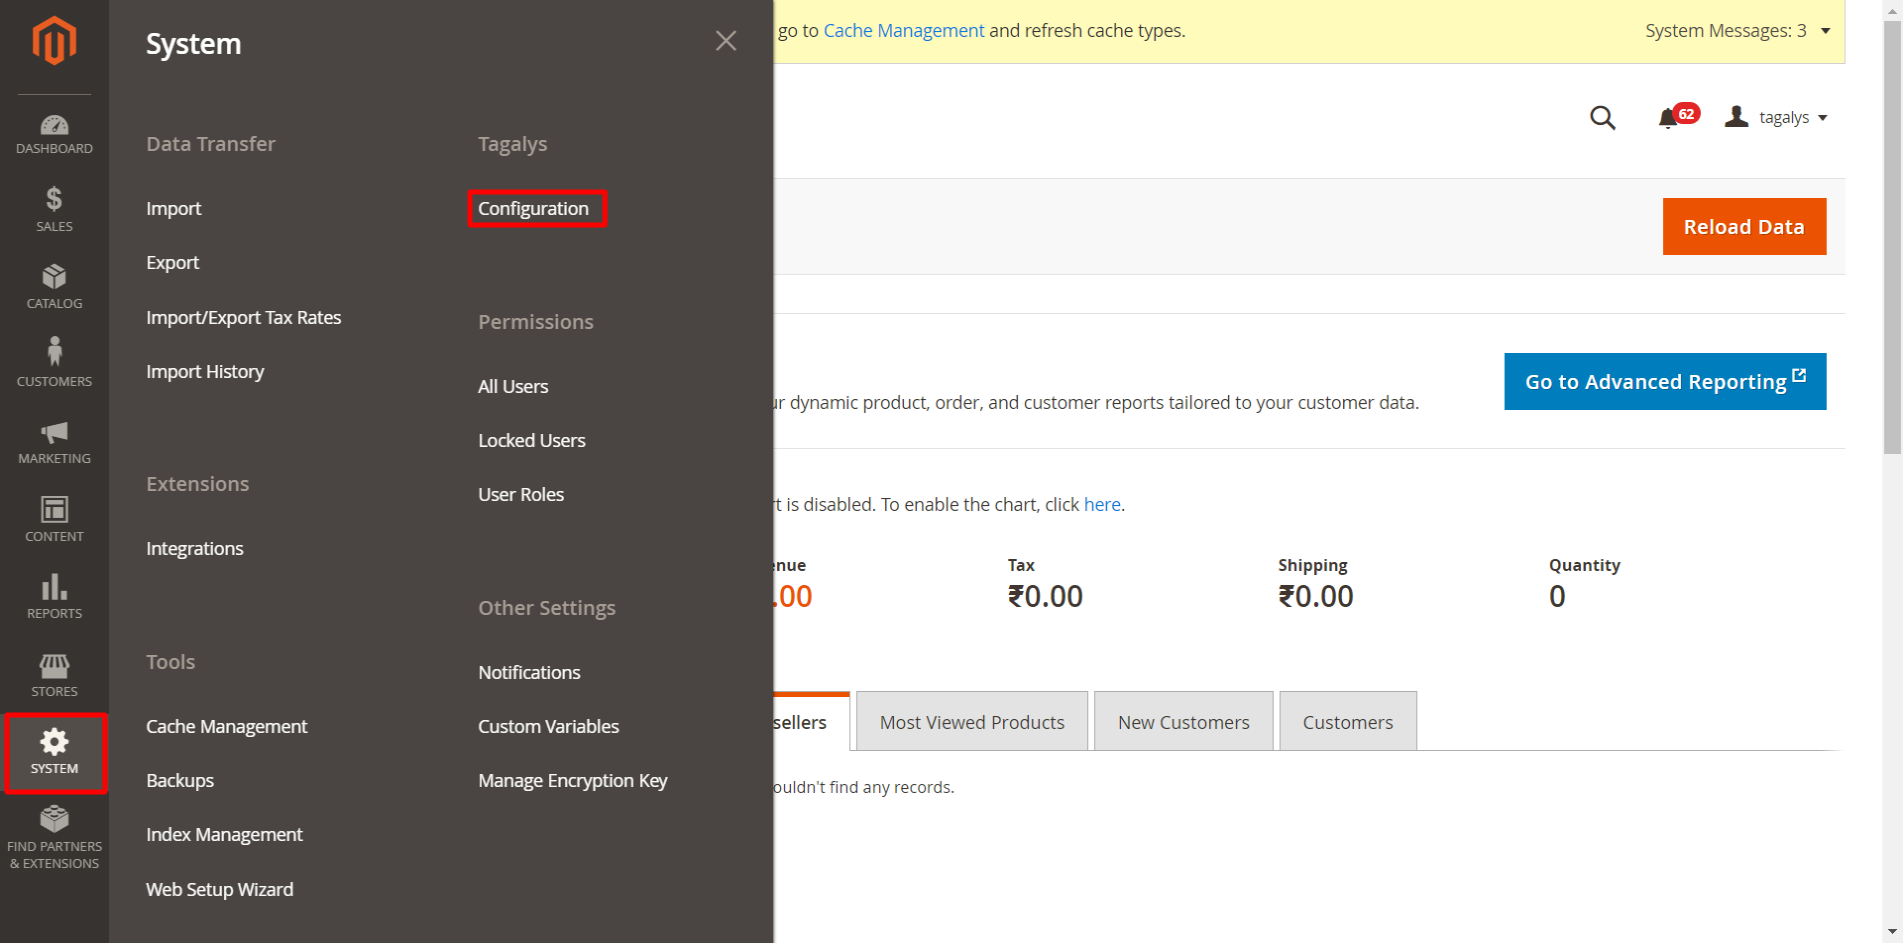 Enable all existing or future categories for merchandising on Tagslys.